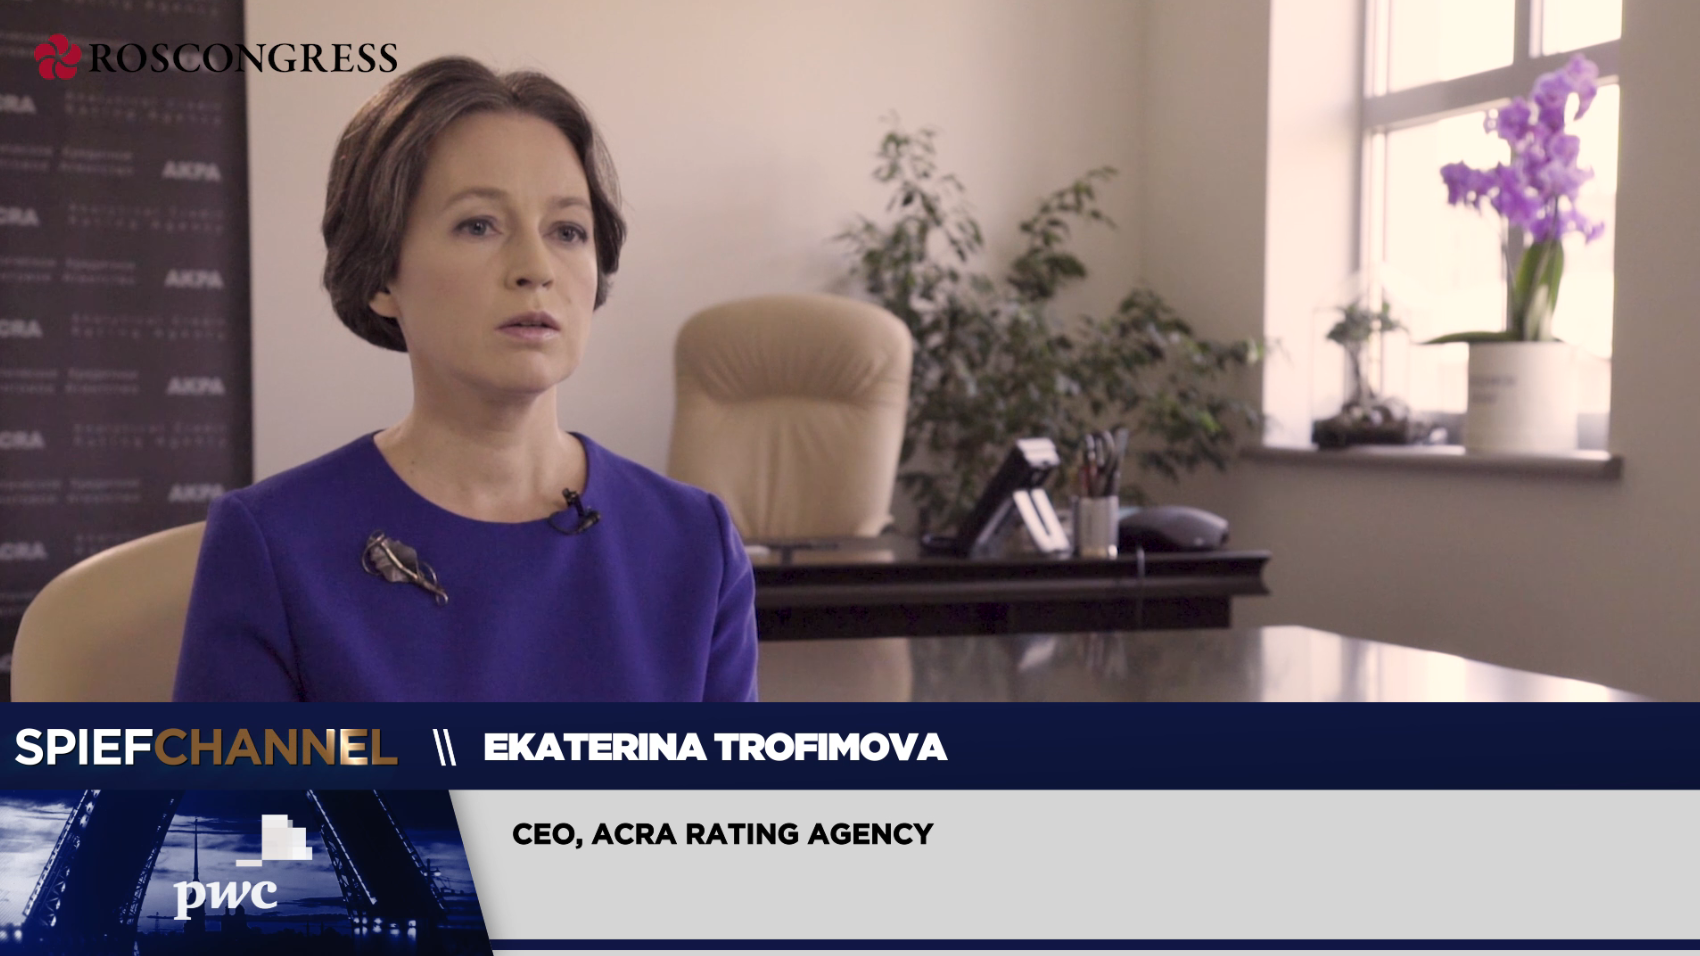 Ekaterina Trofimova, CEO, ACRA Rating Agency